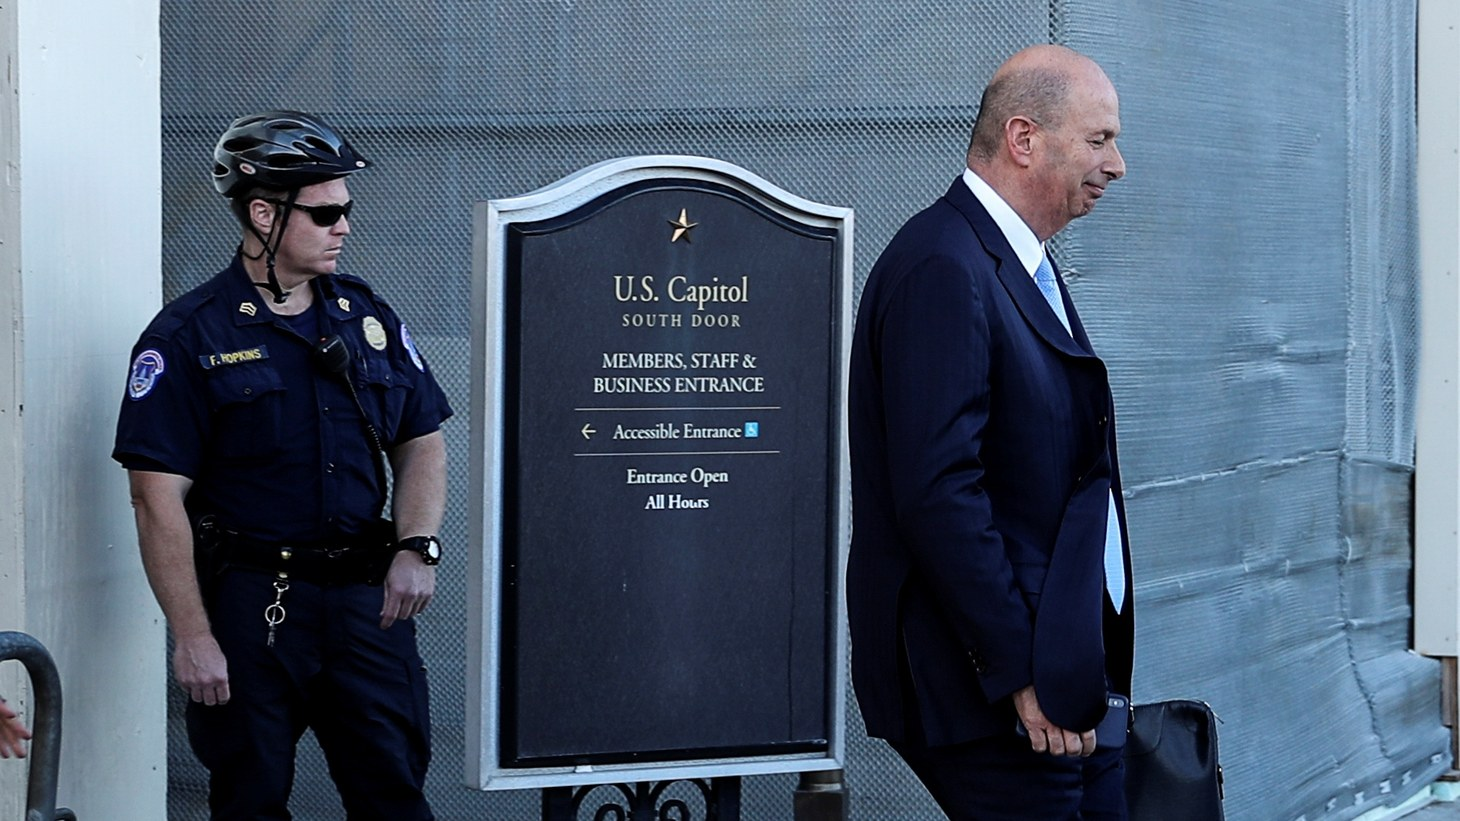 U.S. Ambassador to the European Union Gordon Sondland departs after testifying at a closed-door deposition as part of the U.S. House of Representatives impeachment inquiry into U.S. President Trump led by the House Intelligence, House Foreign Affairs and House Oversight and Reform Committees on Capitol Hill in Washington, U.S., October 28, 2019.